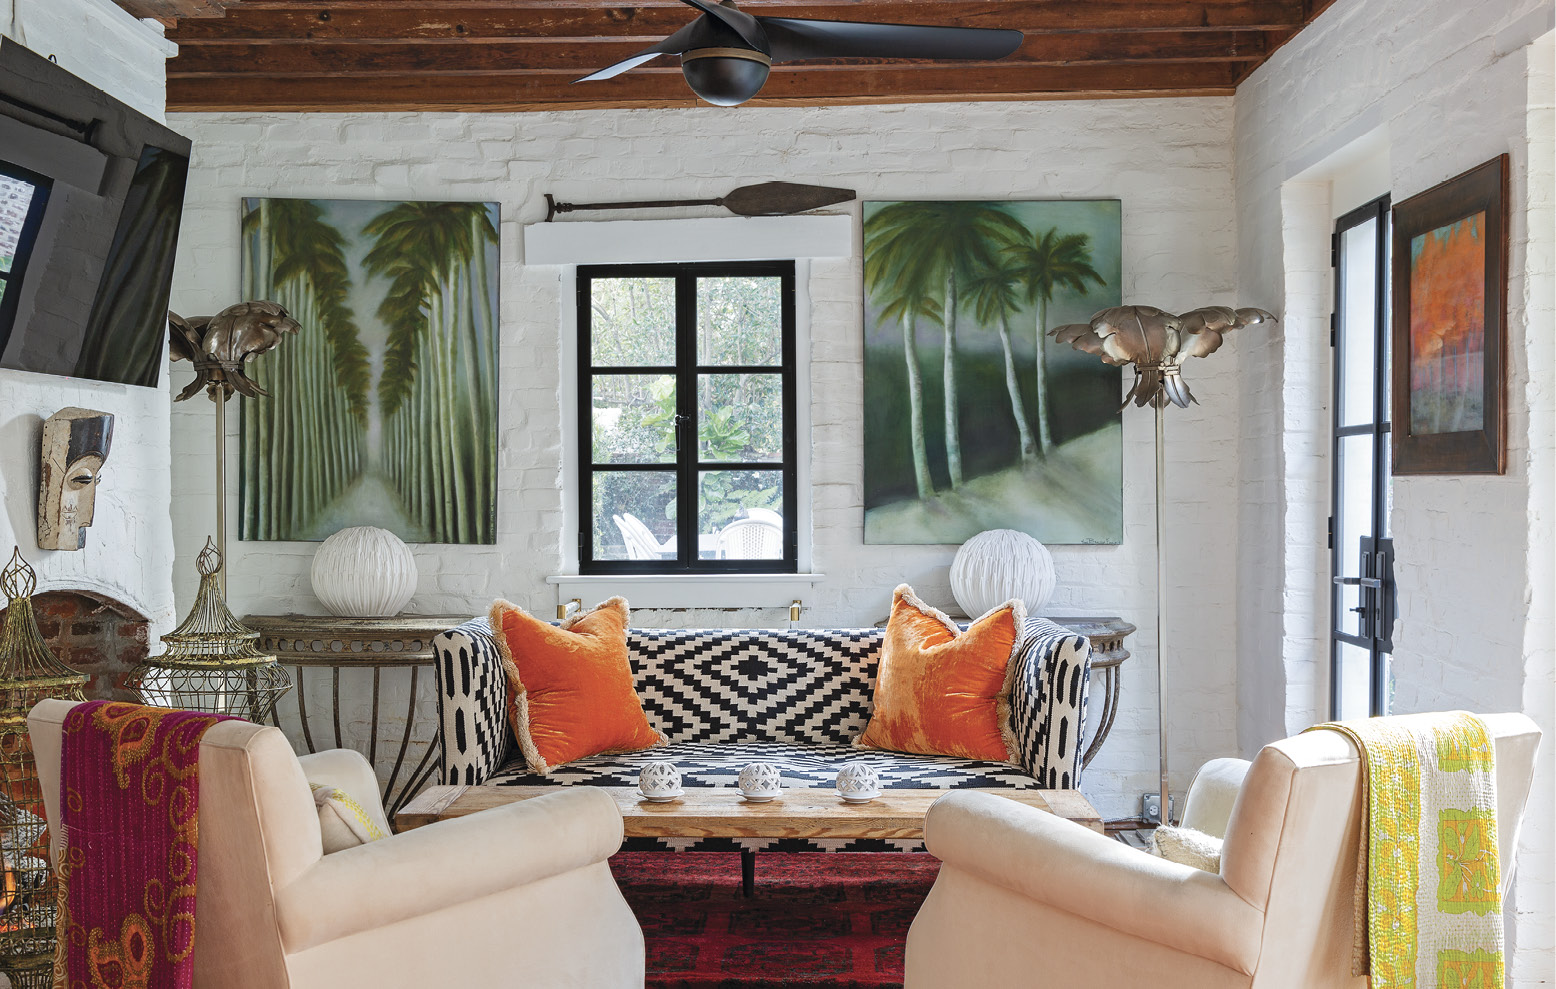 The former kitchen house is now a charming guest suite—and Betsy's favorite space to watch the morning news. A kilim-upholstered sofa with orange velvet pillows from Fritz Porter lends a Middle Eastern vibe to the cozy cottage, while palm trees painted by Betsy mimic the vintage floor lamps.